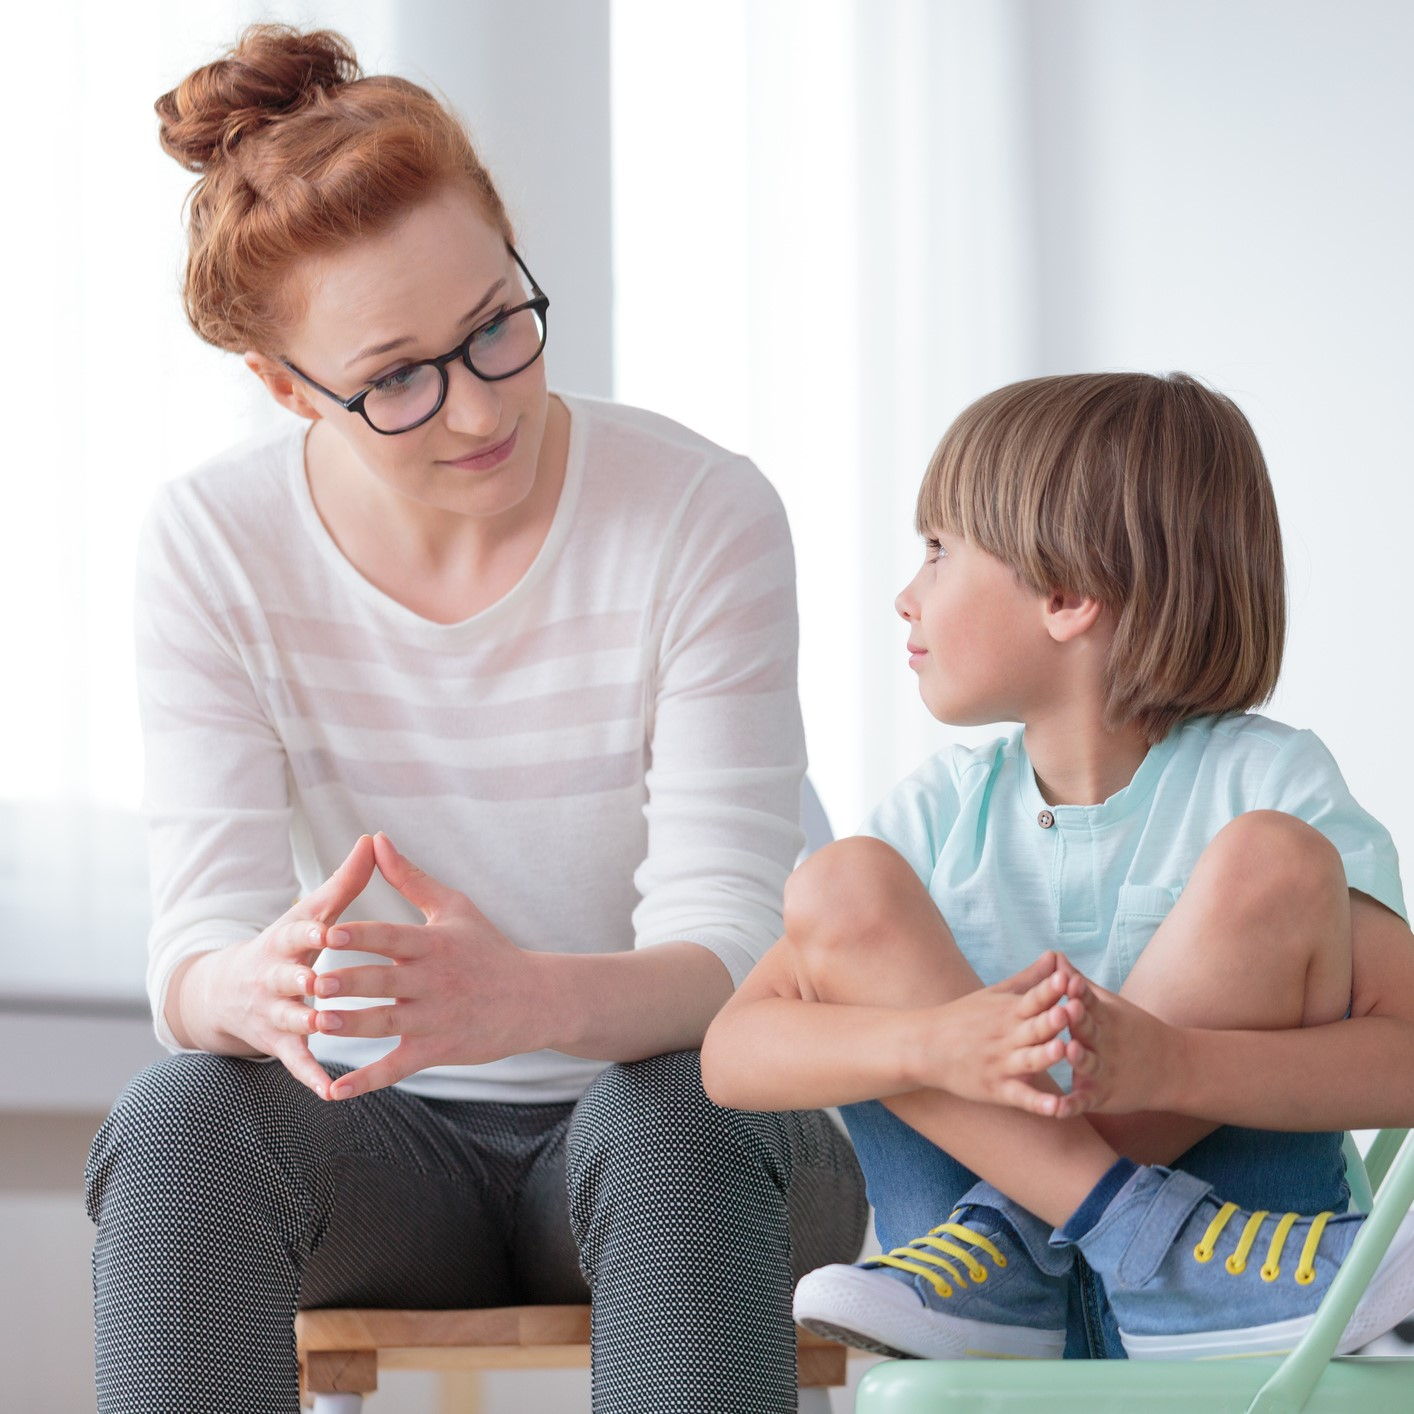 School psychologist having serious conversation with a child.